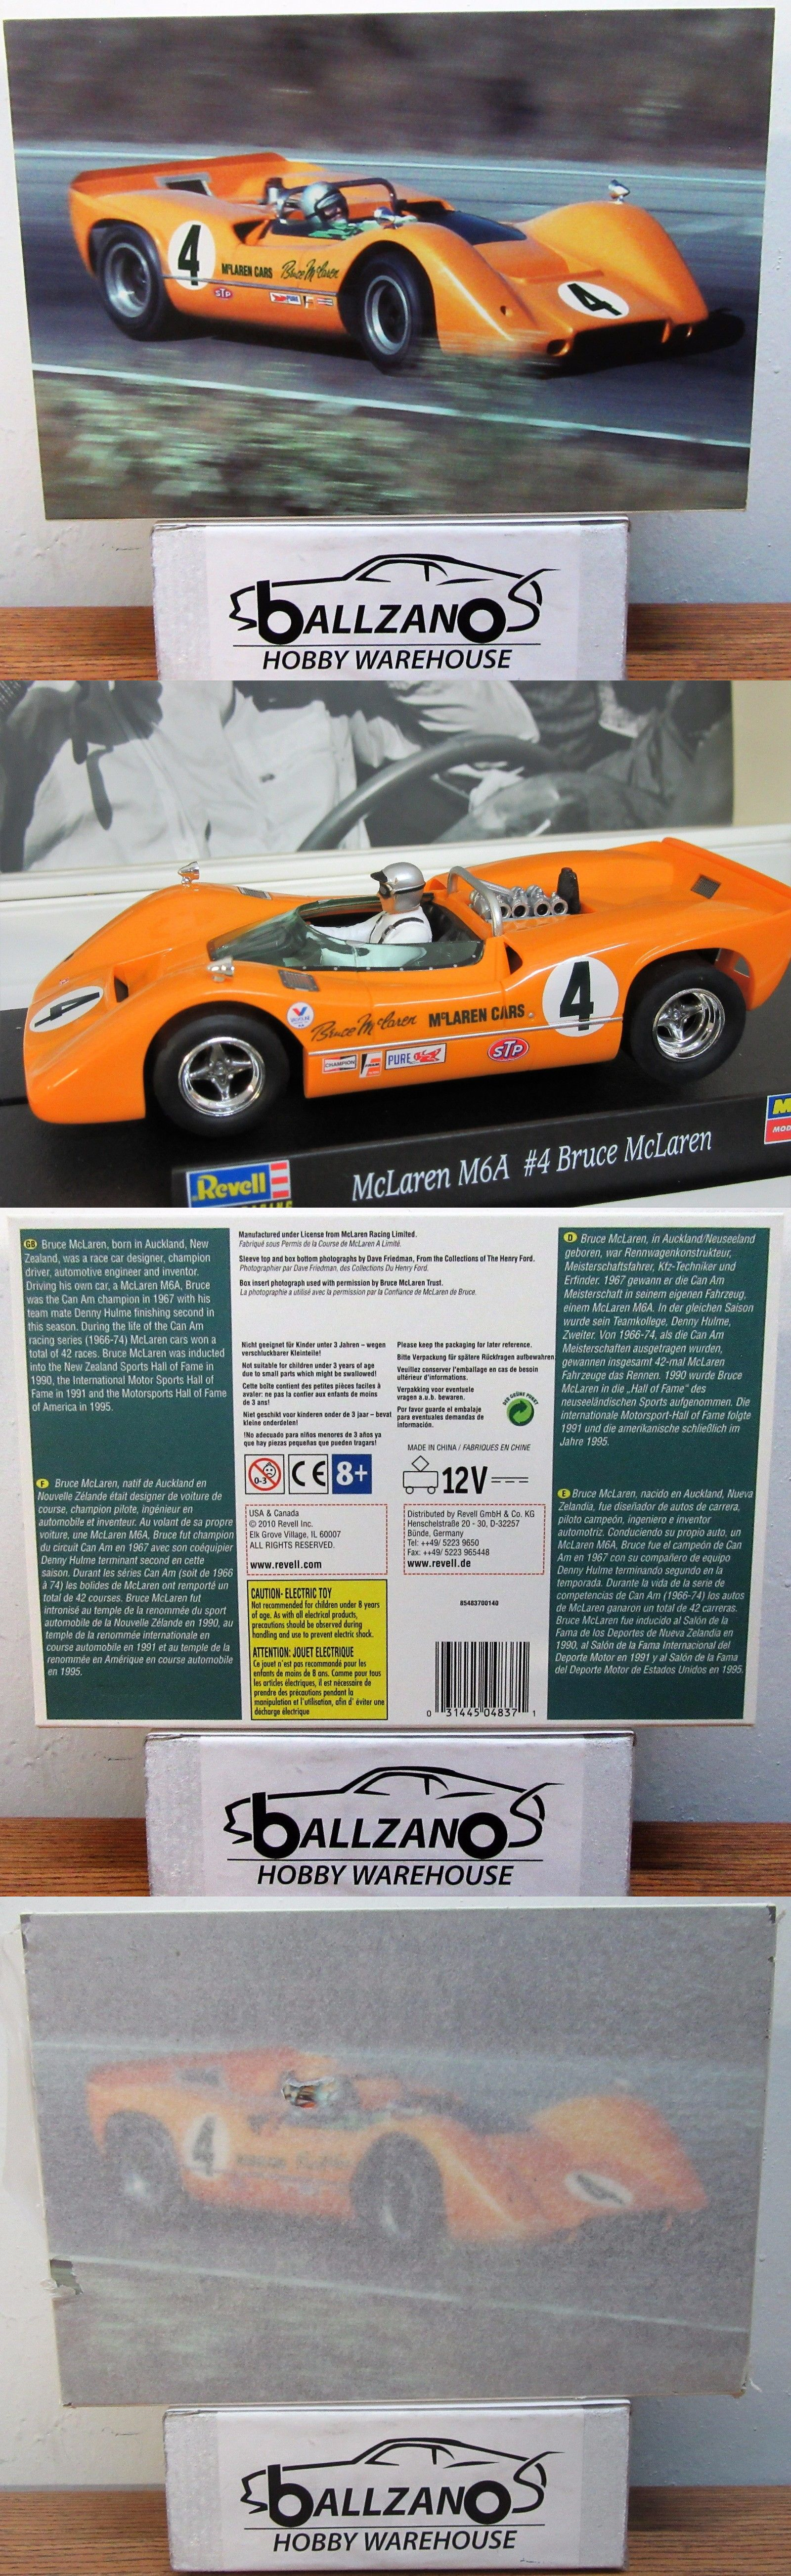 Best 10 revell monogram ideas on pinterest scale models model airplanes and rc planes for sale